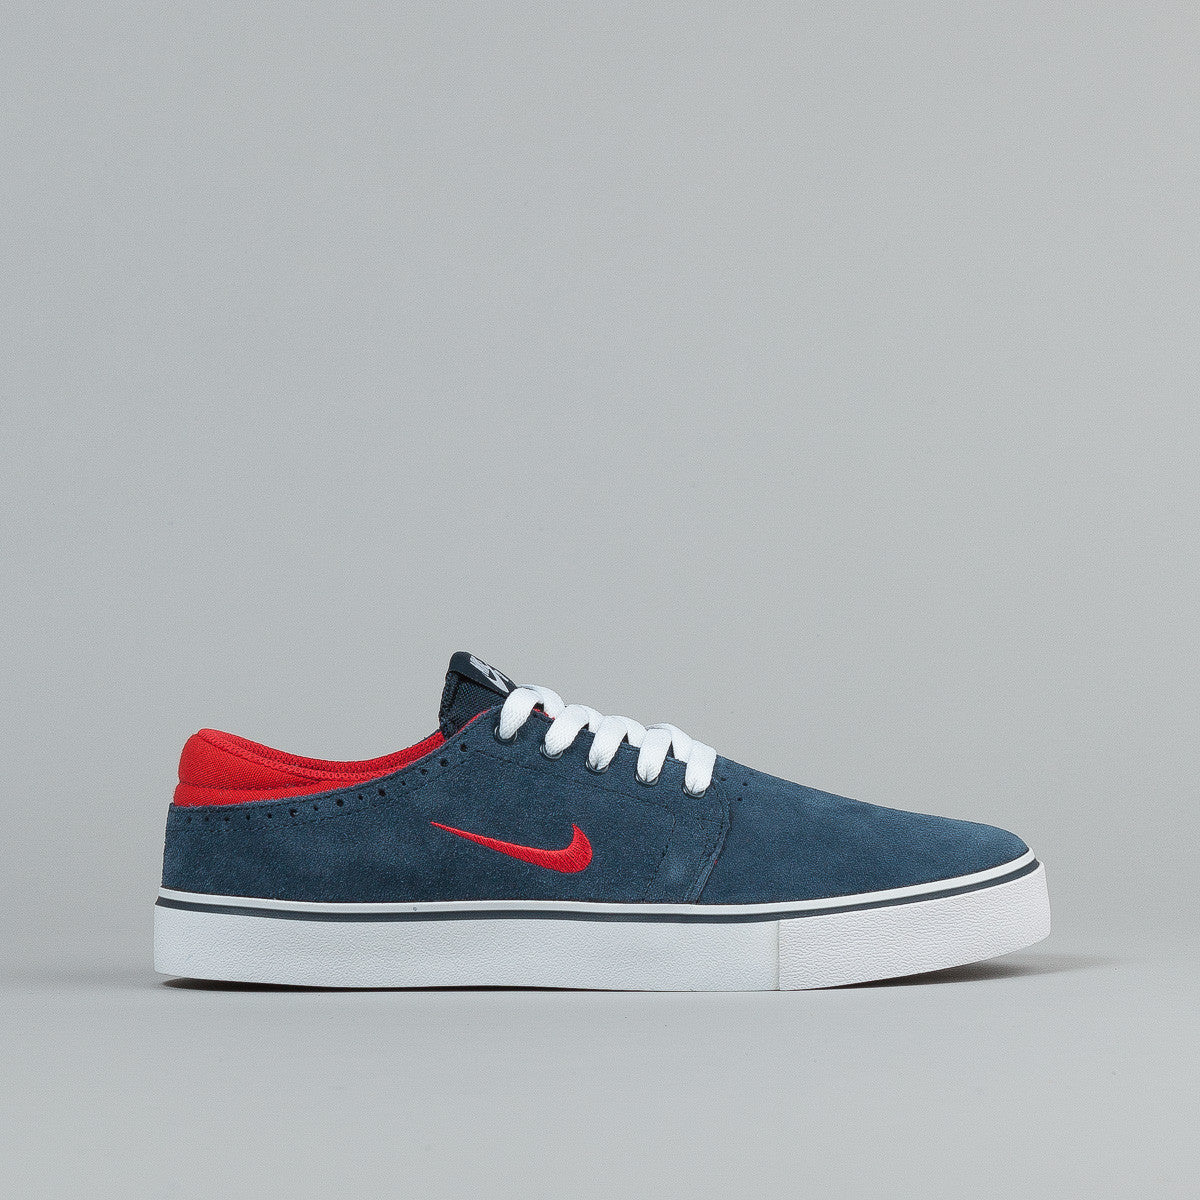 Nike SB Team Edition Armory Navy / University Red